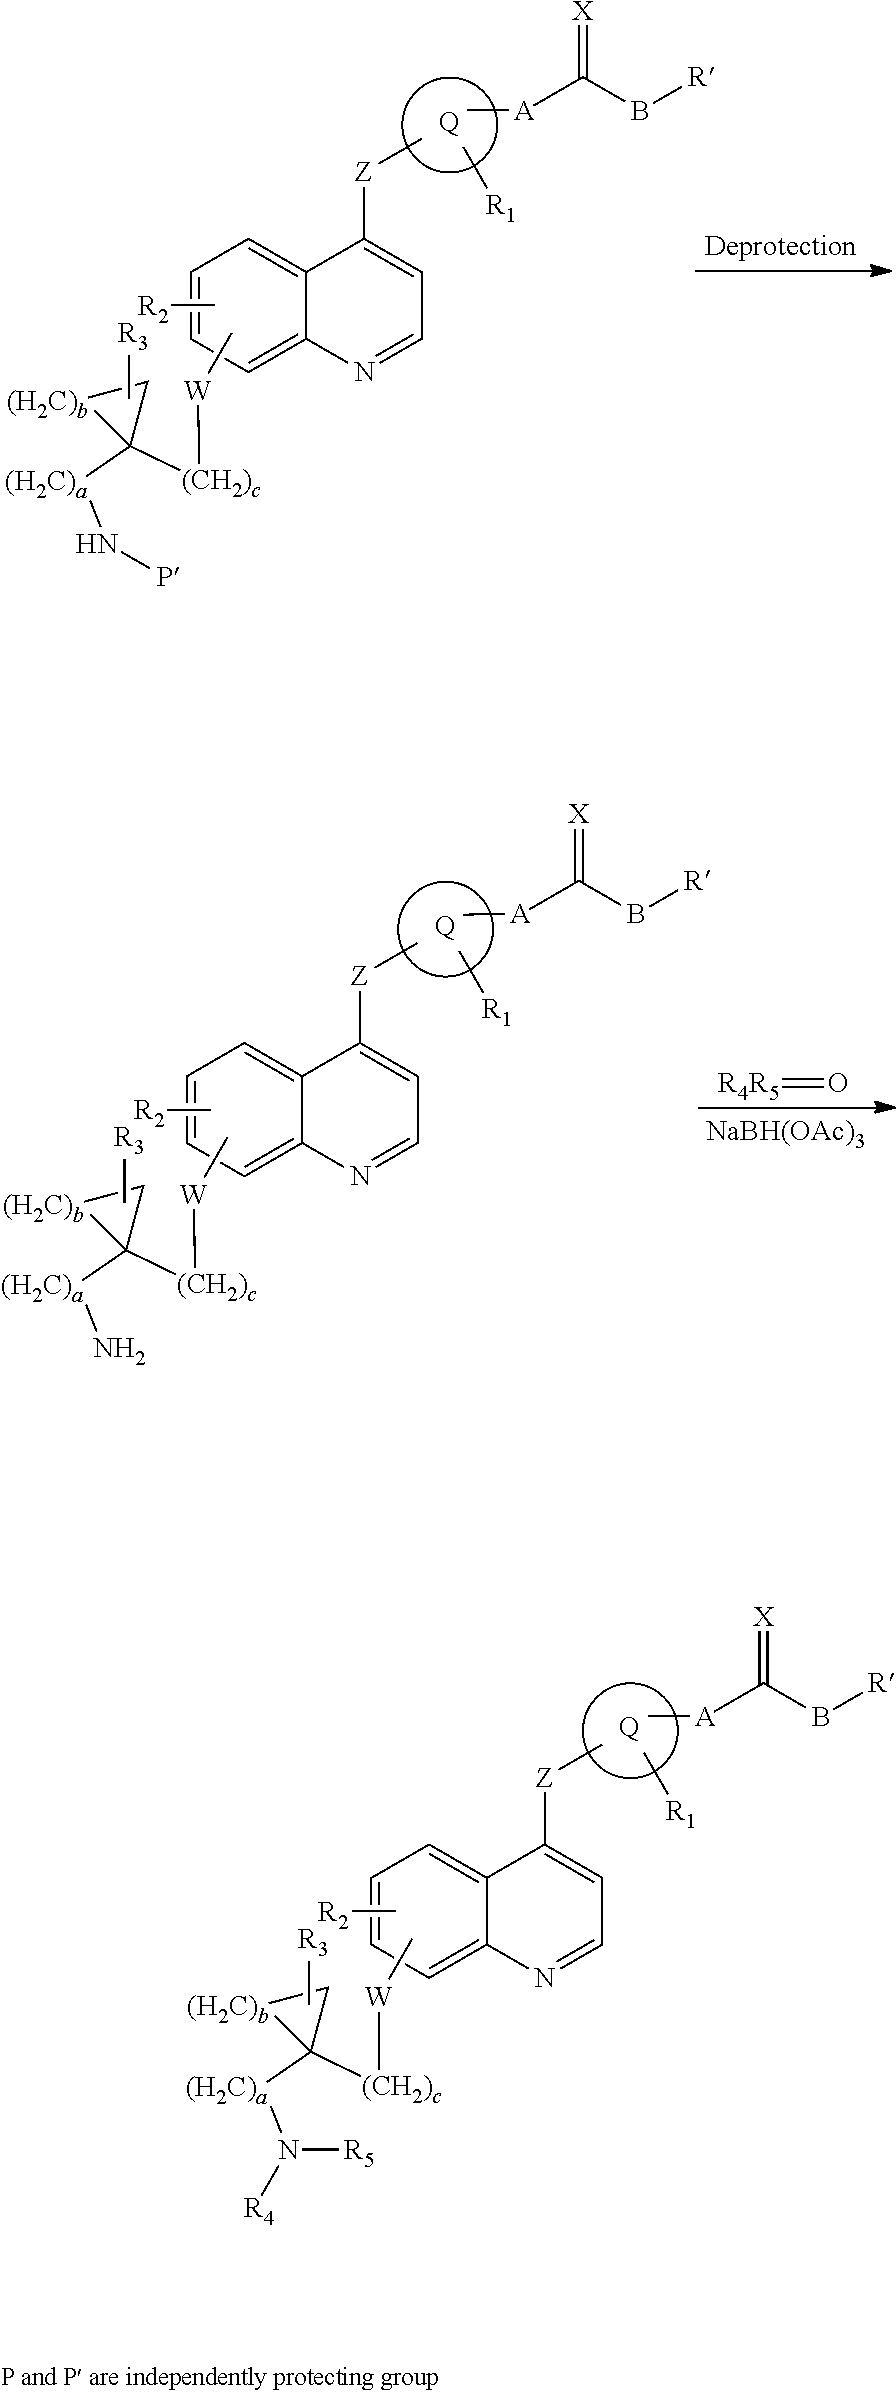 US8513283B2 - Spiro substituted compounds as angiogenesis